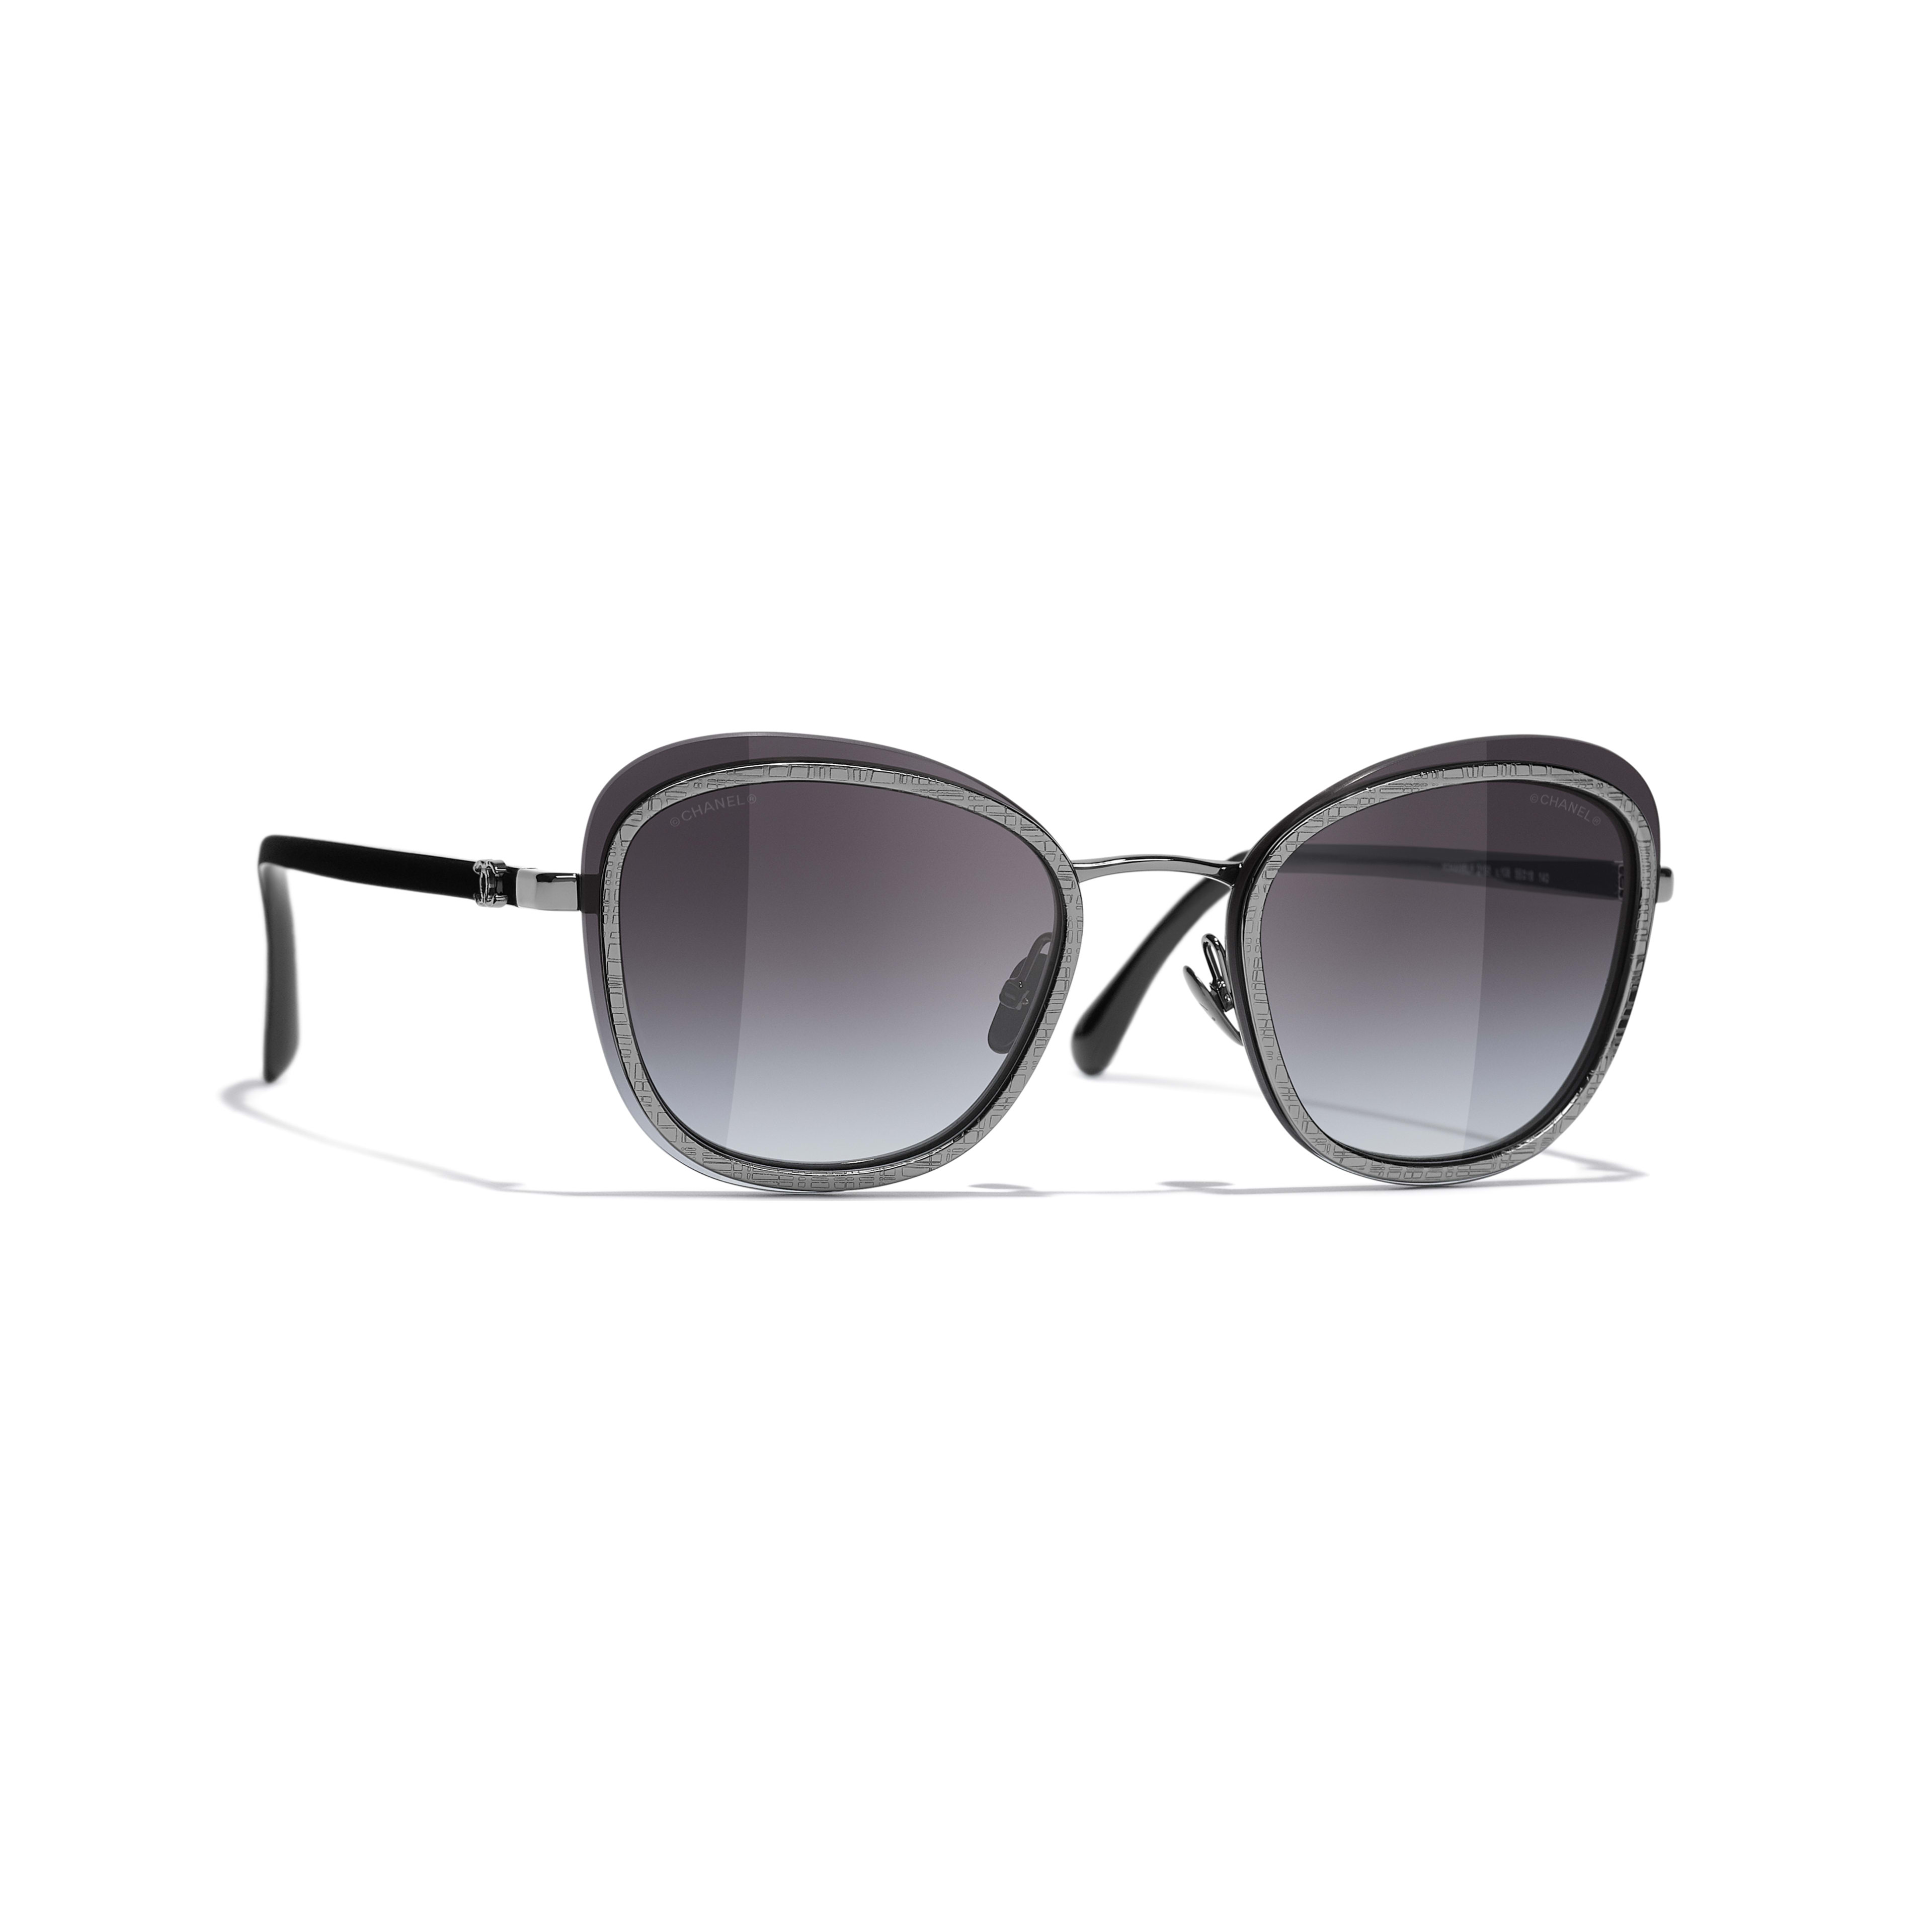 Pantos Sunglasses - Silver - Acetate & Metal - CHANEL - Default view - see standard sized version